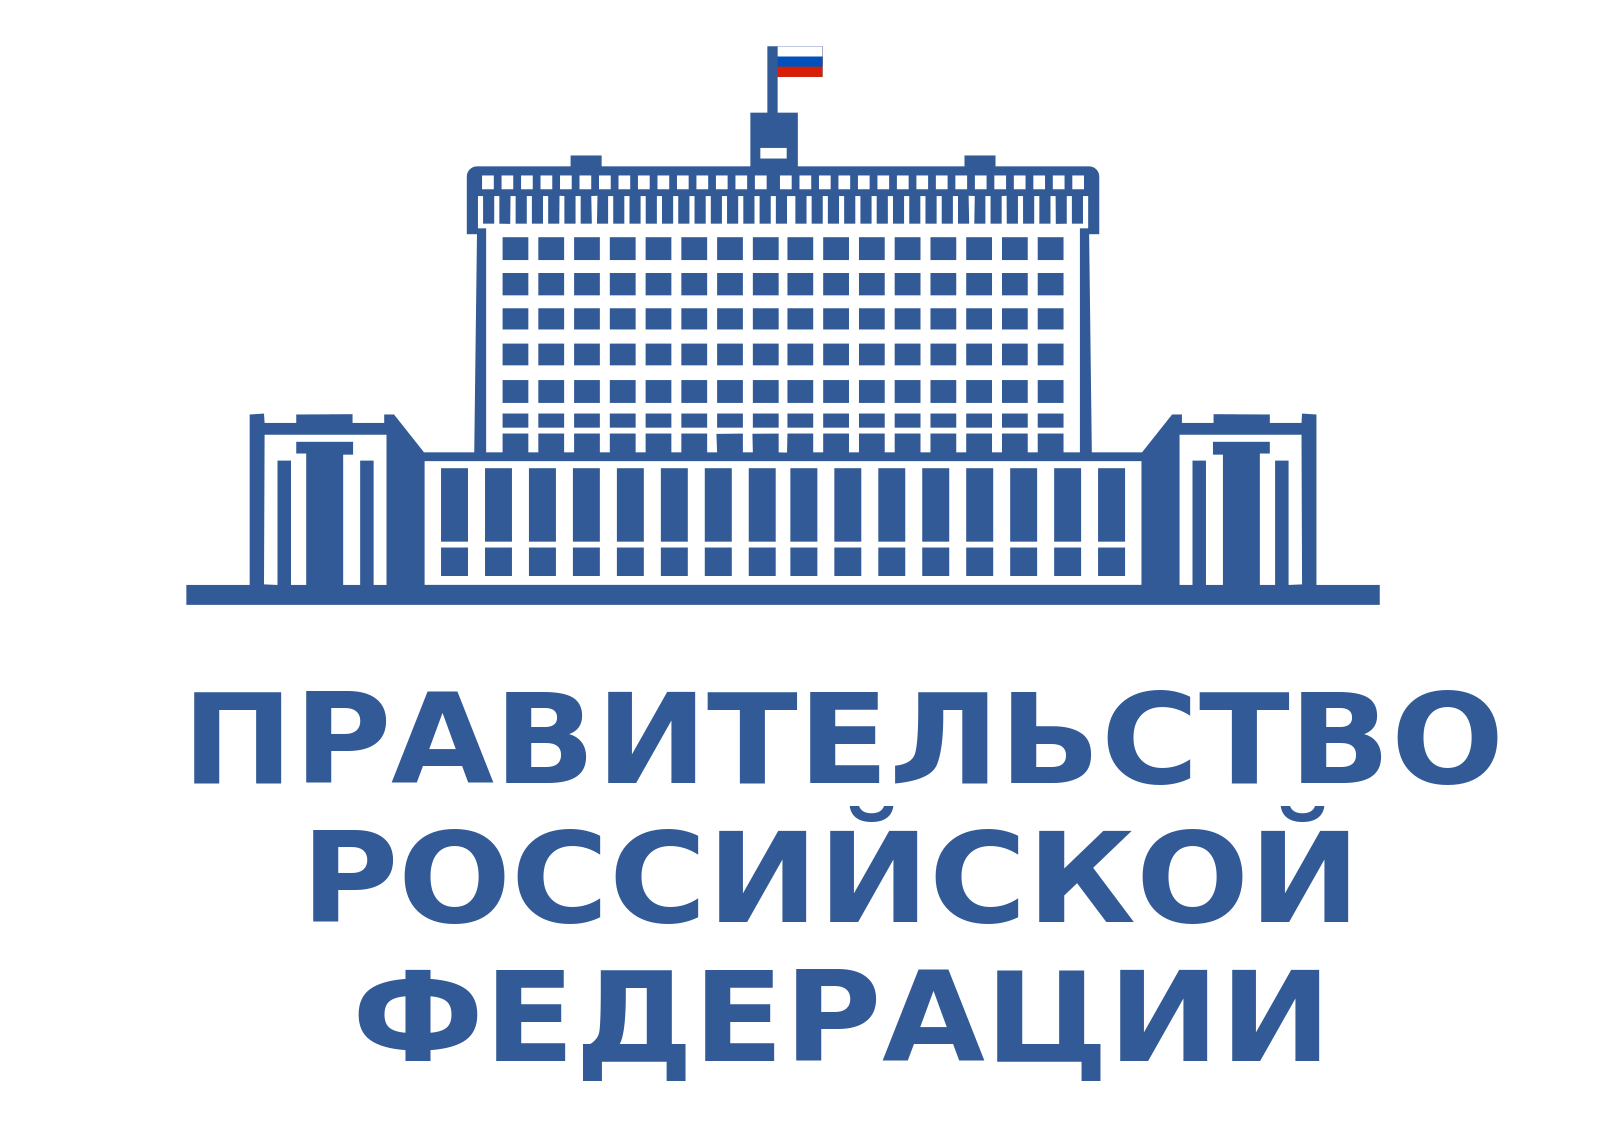 government-ru-logo-svg